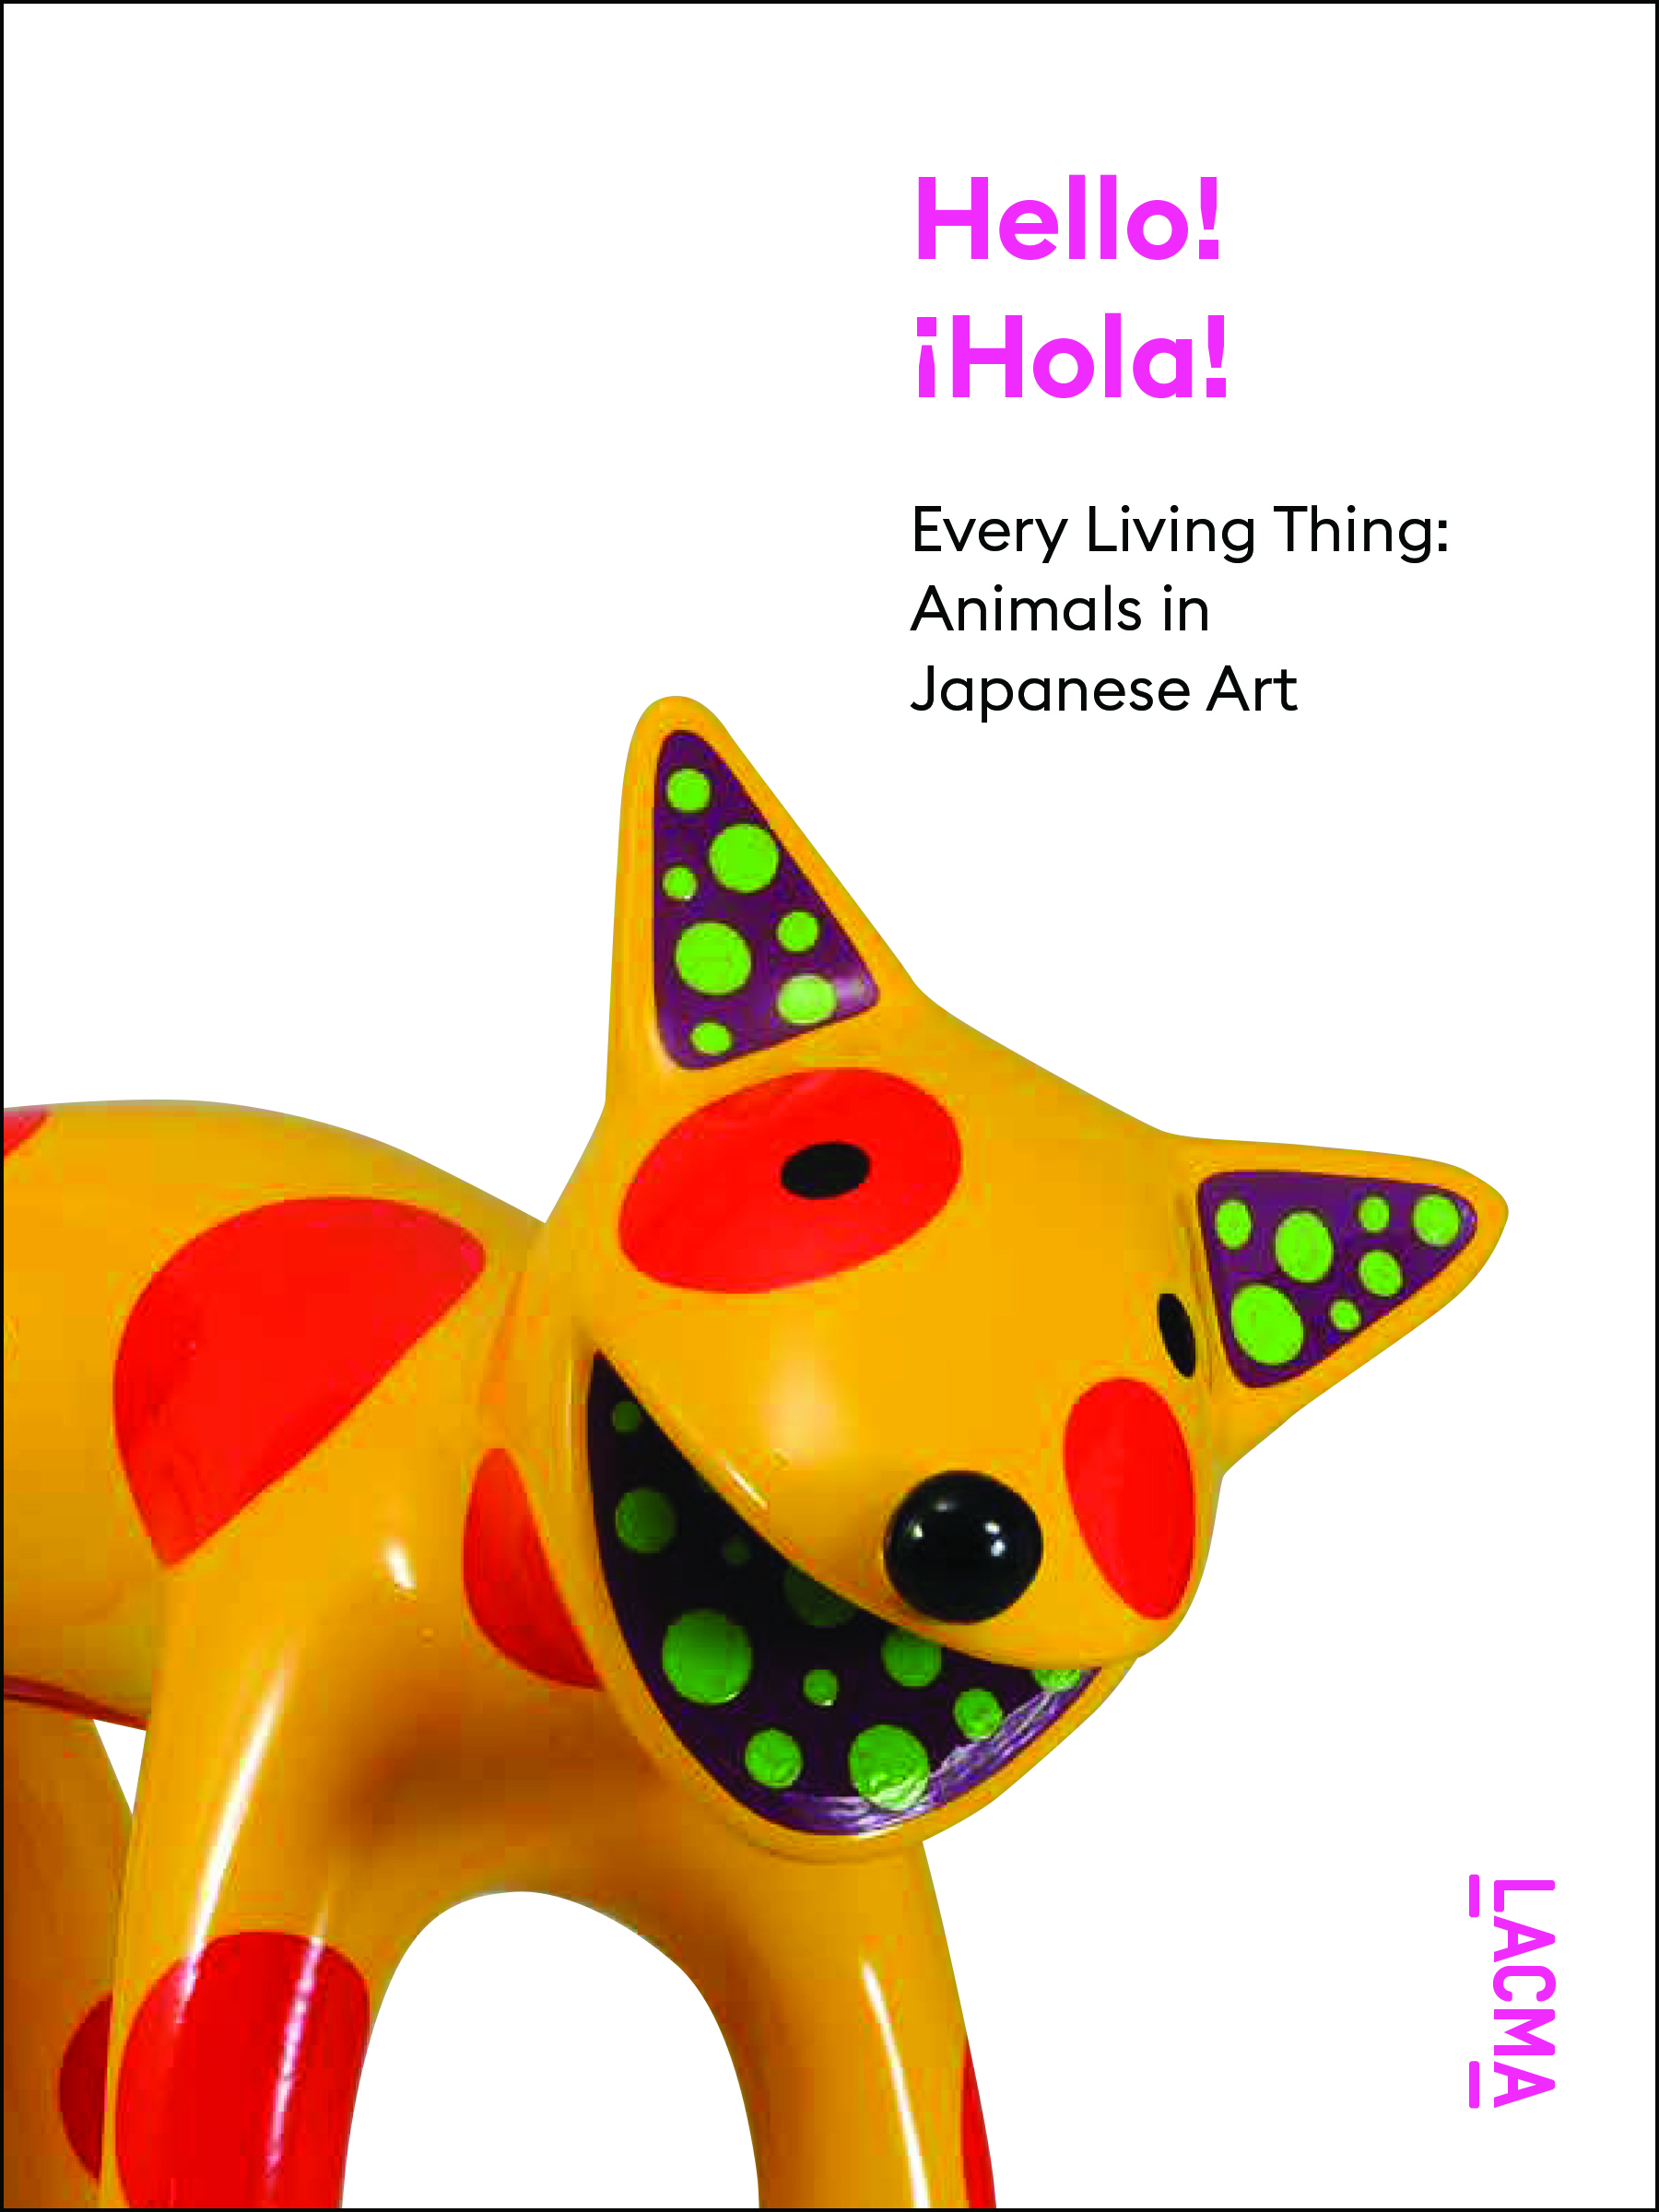 Family guide for Every Living Thing: Animals in Japanese Art